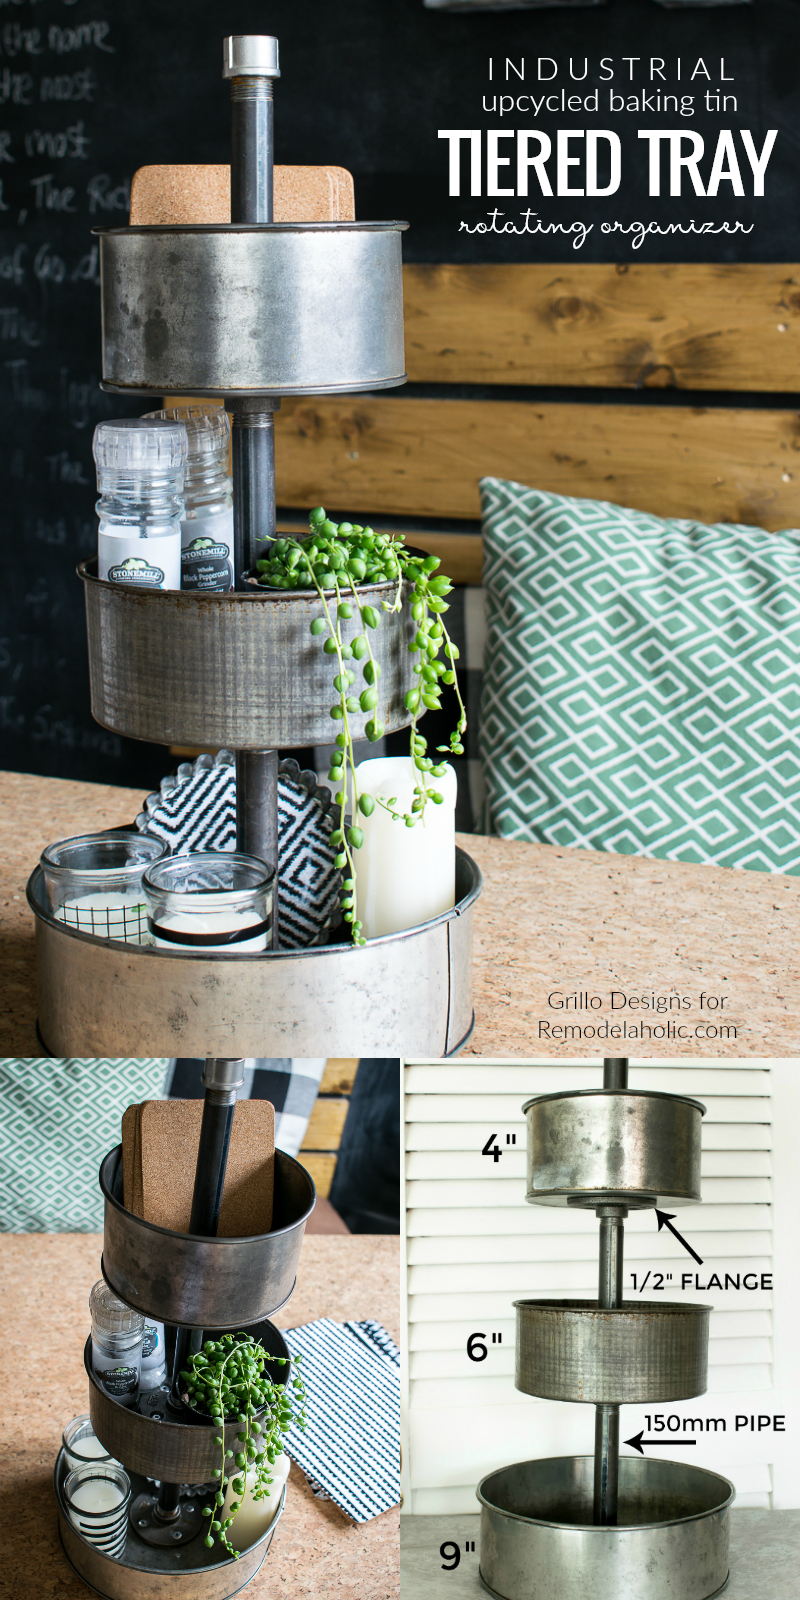 Remodelaholic diy rotating metal tiered tray organizer for Diy upcycle